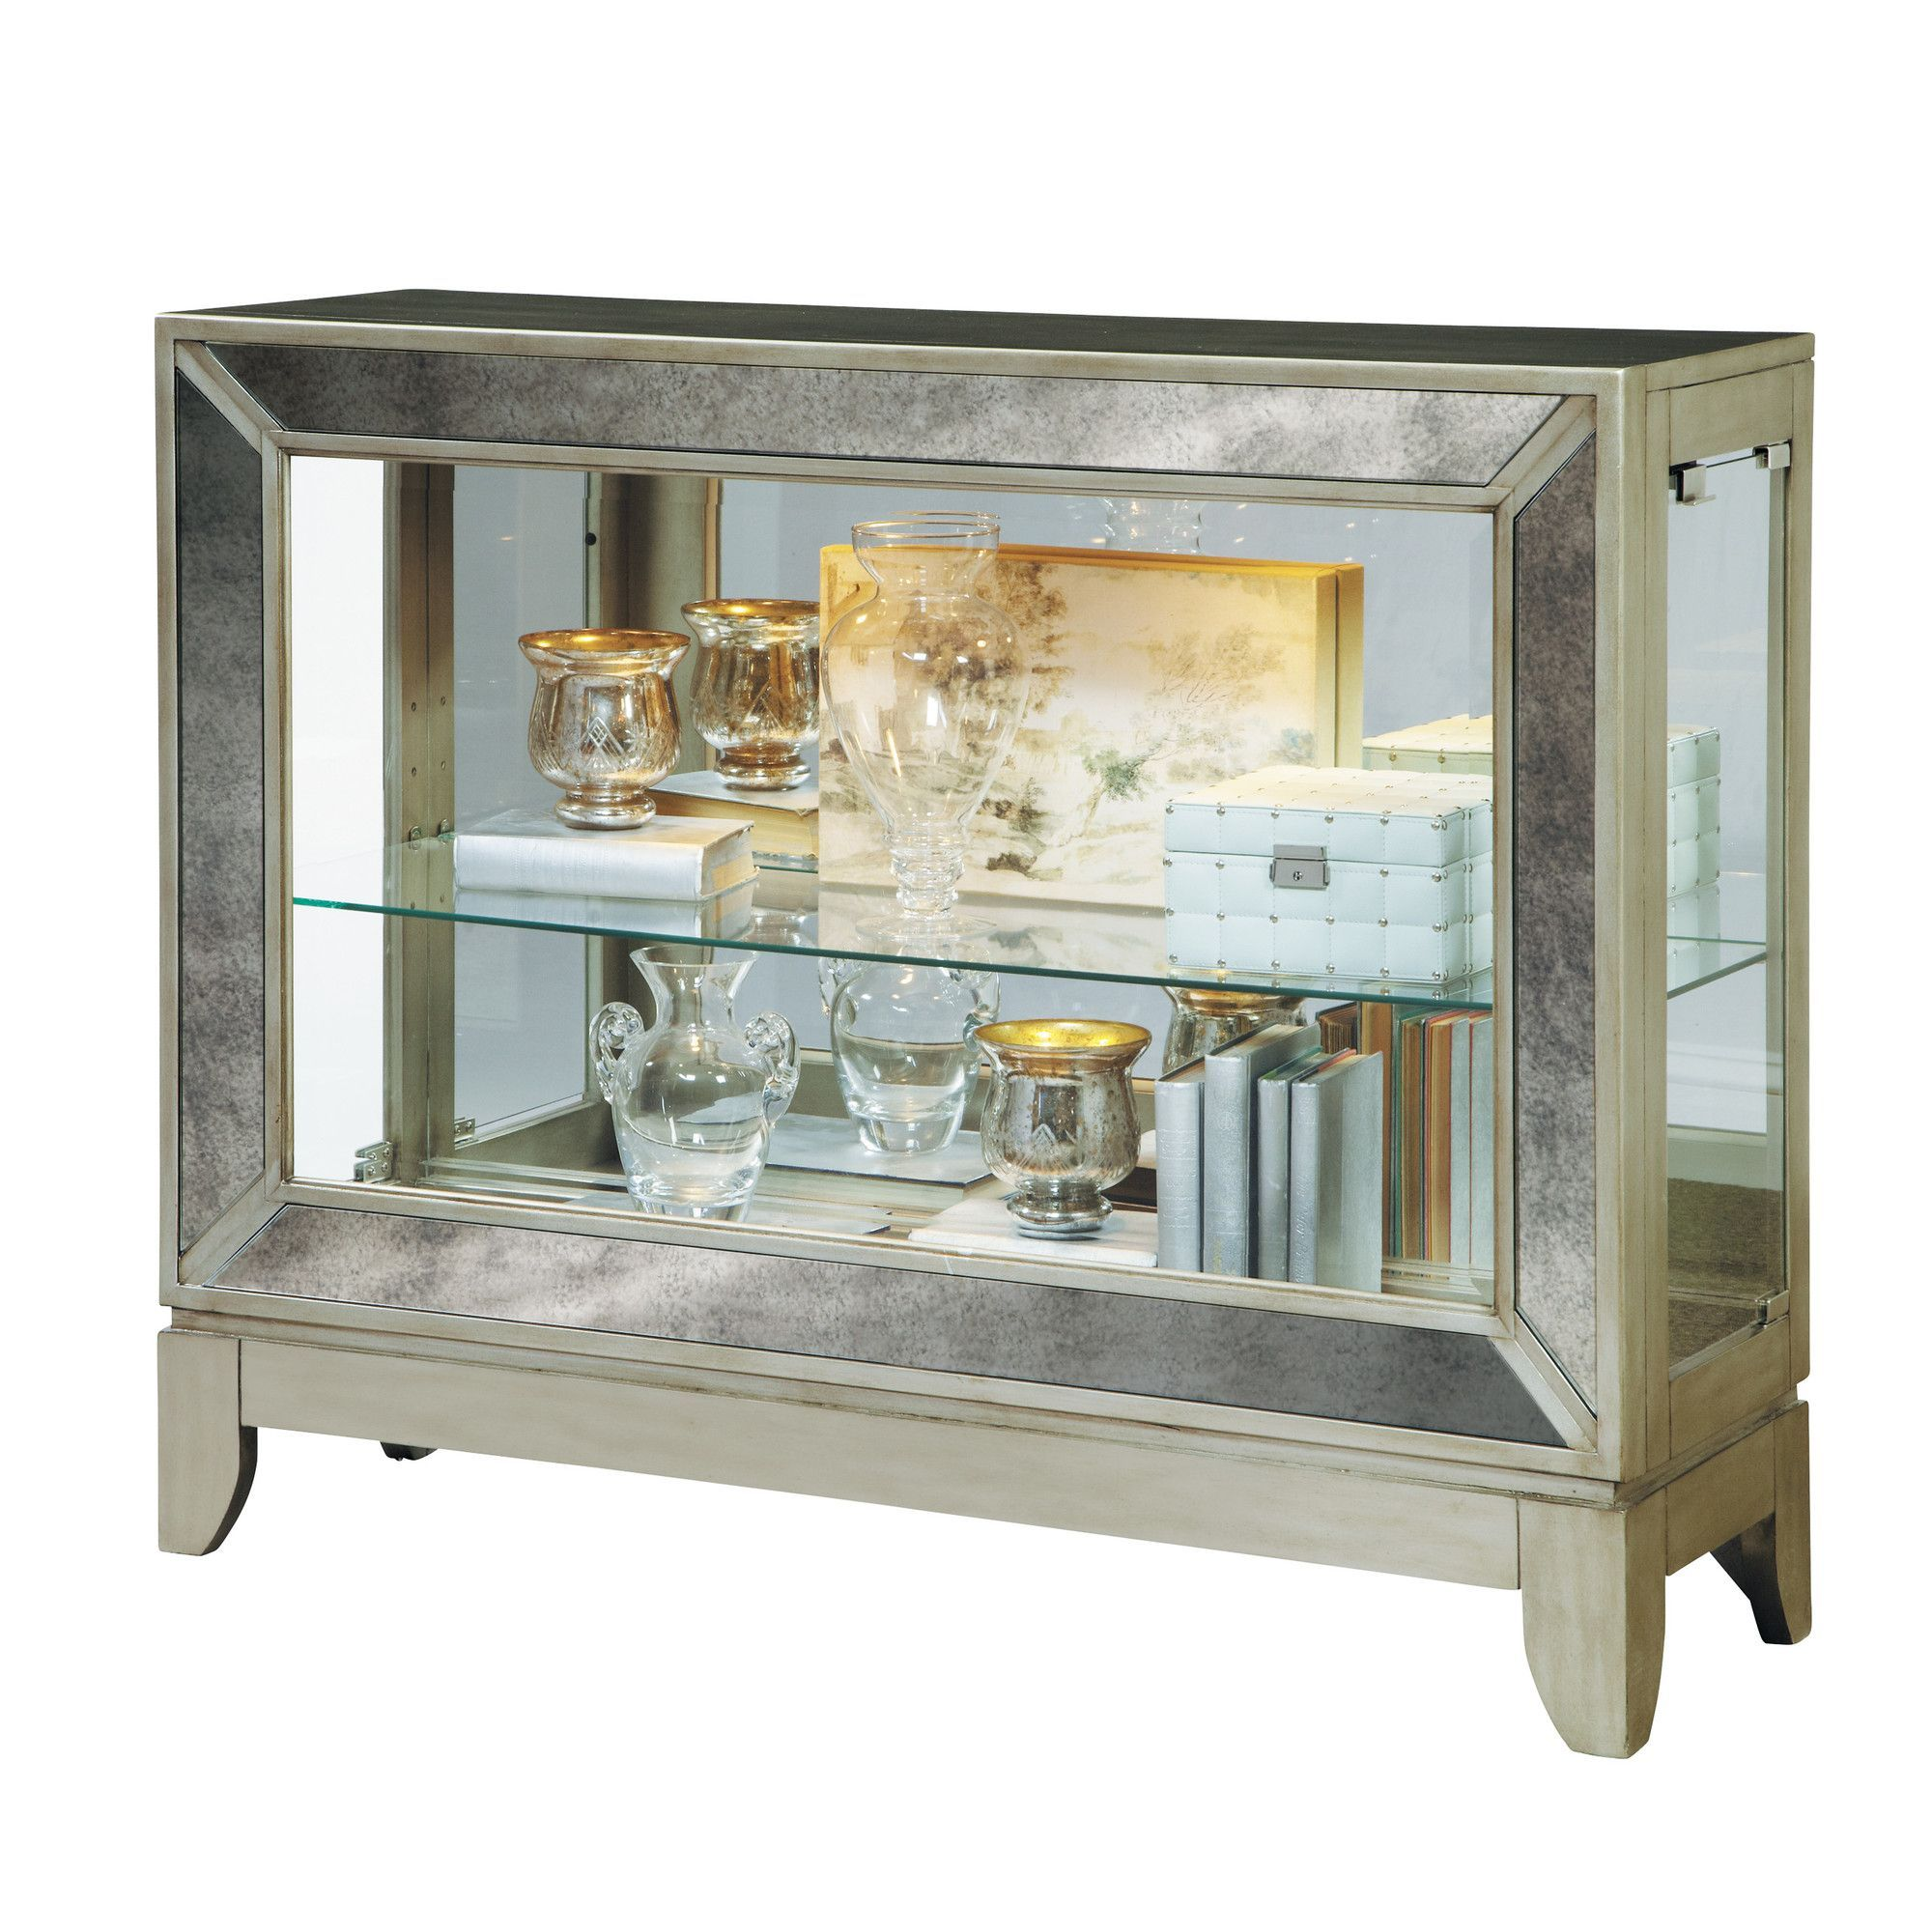 Mirrored 2 Shelf Console Cabinet | These are a few of my favorite ...